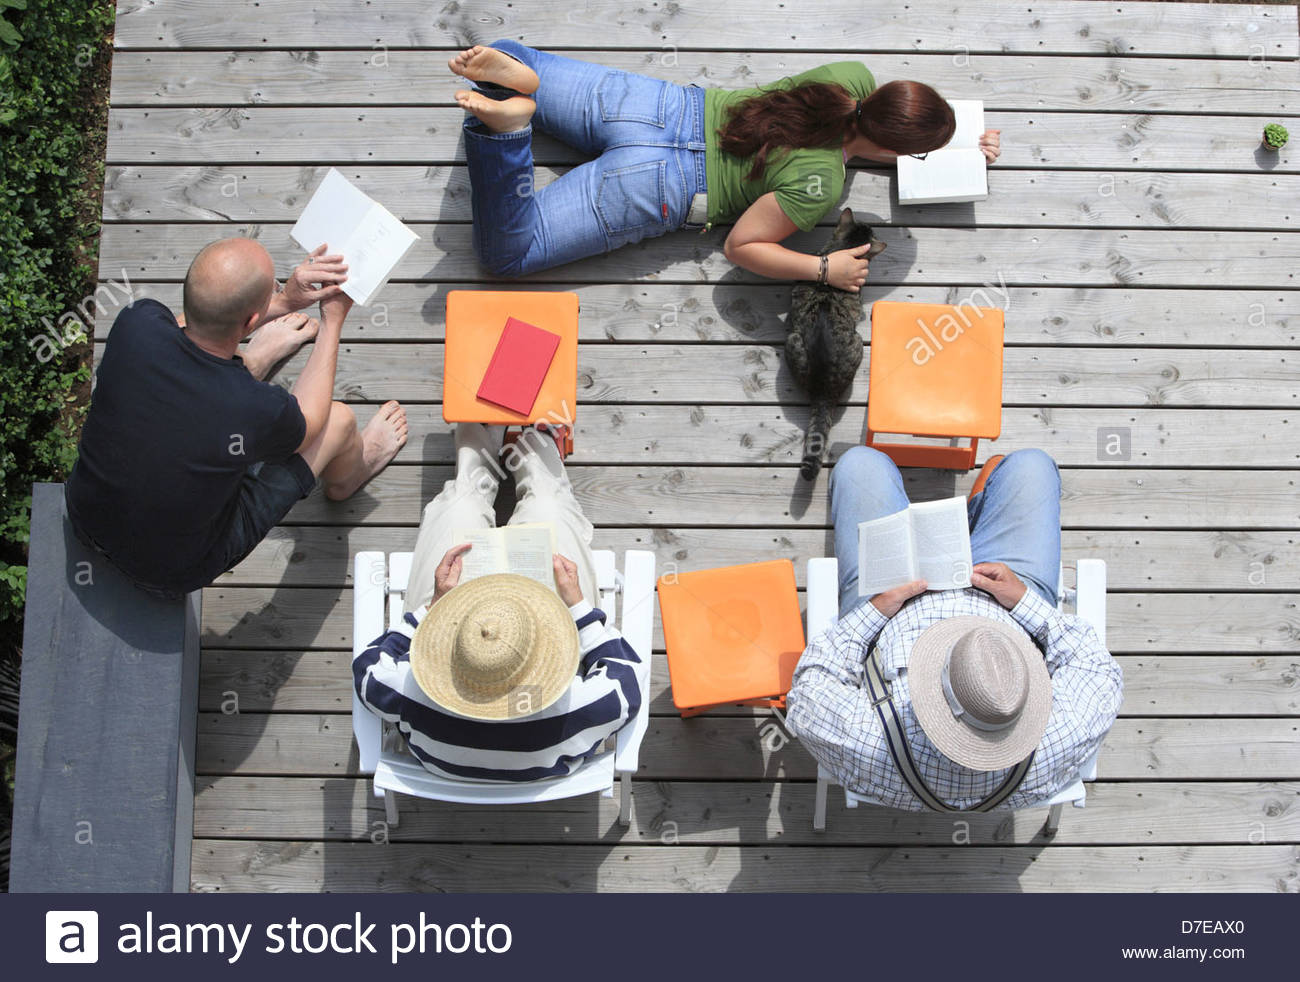 High angle view of a family reading novels on the boardwalk, Bonn, Germany - Stock Image